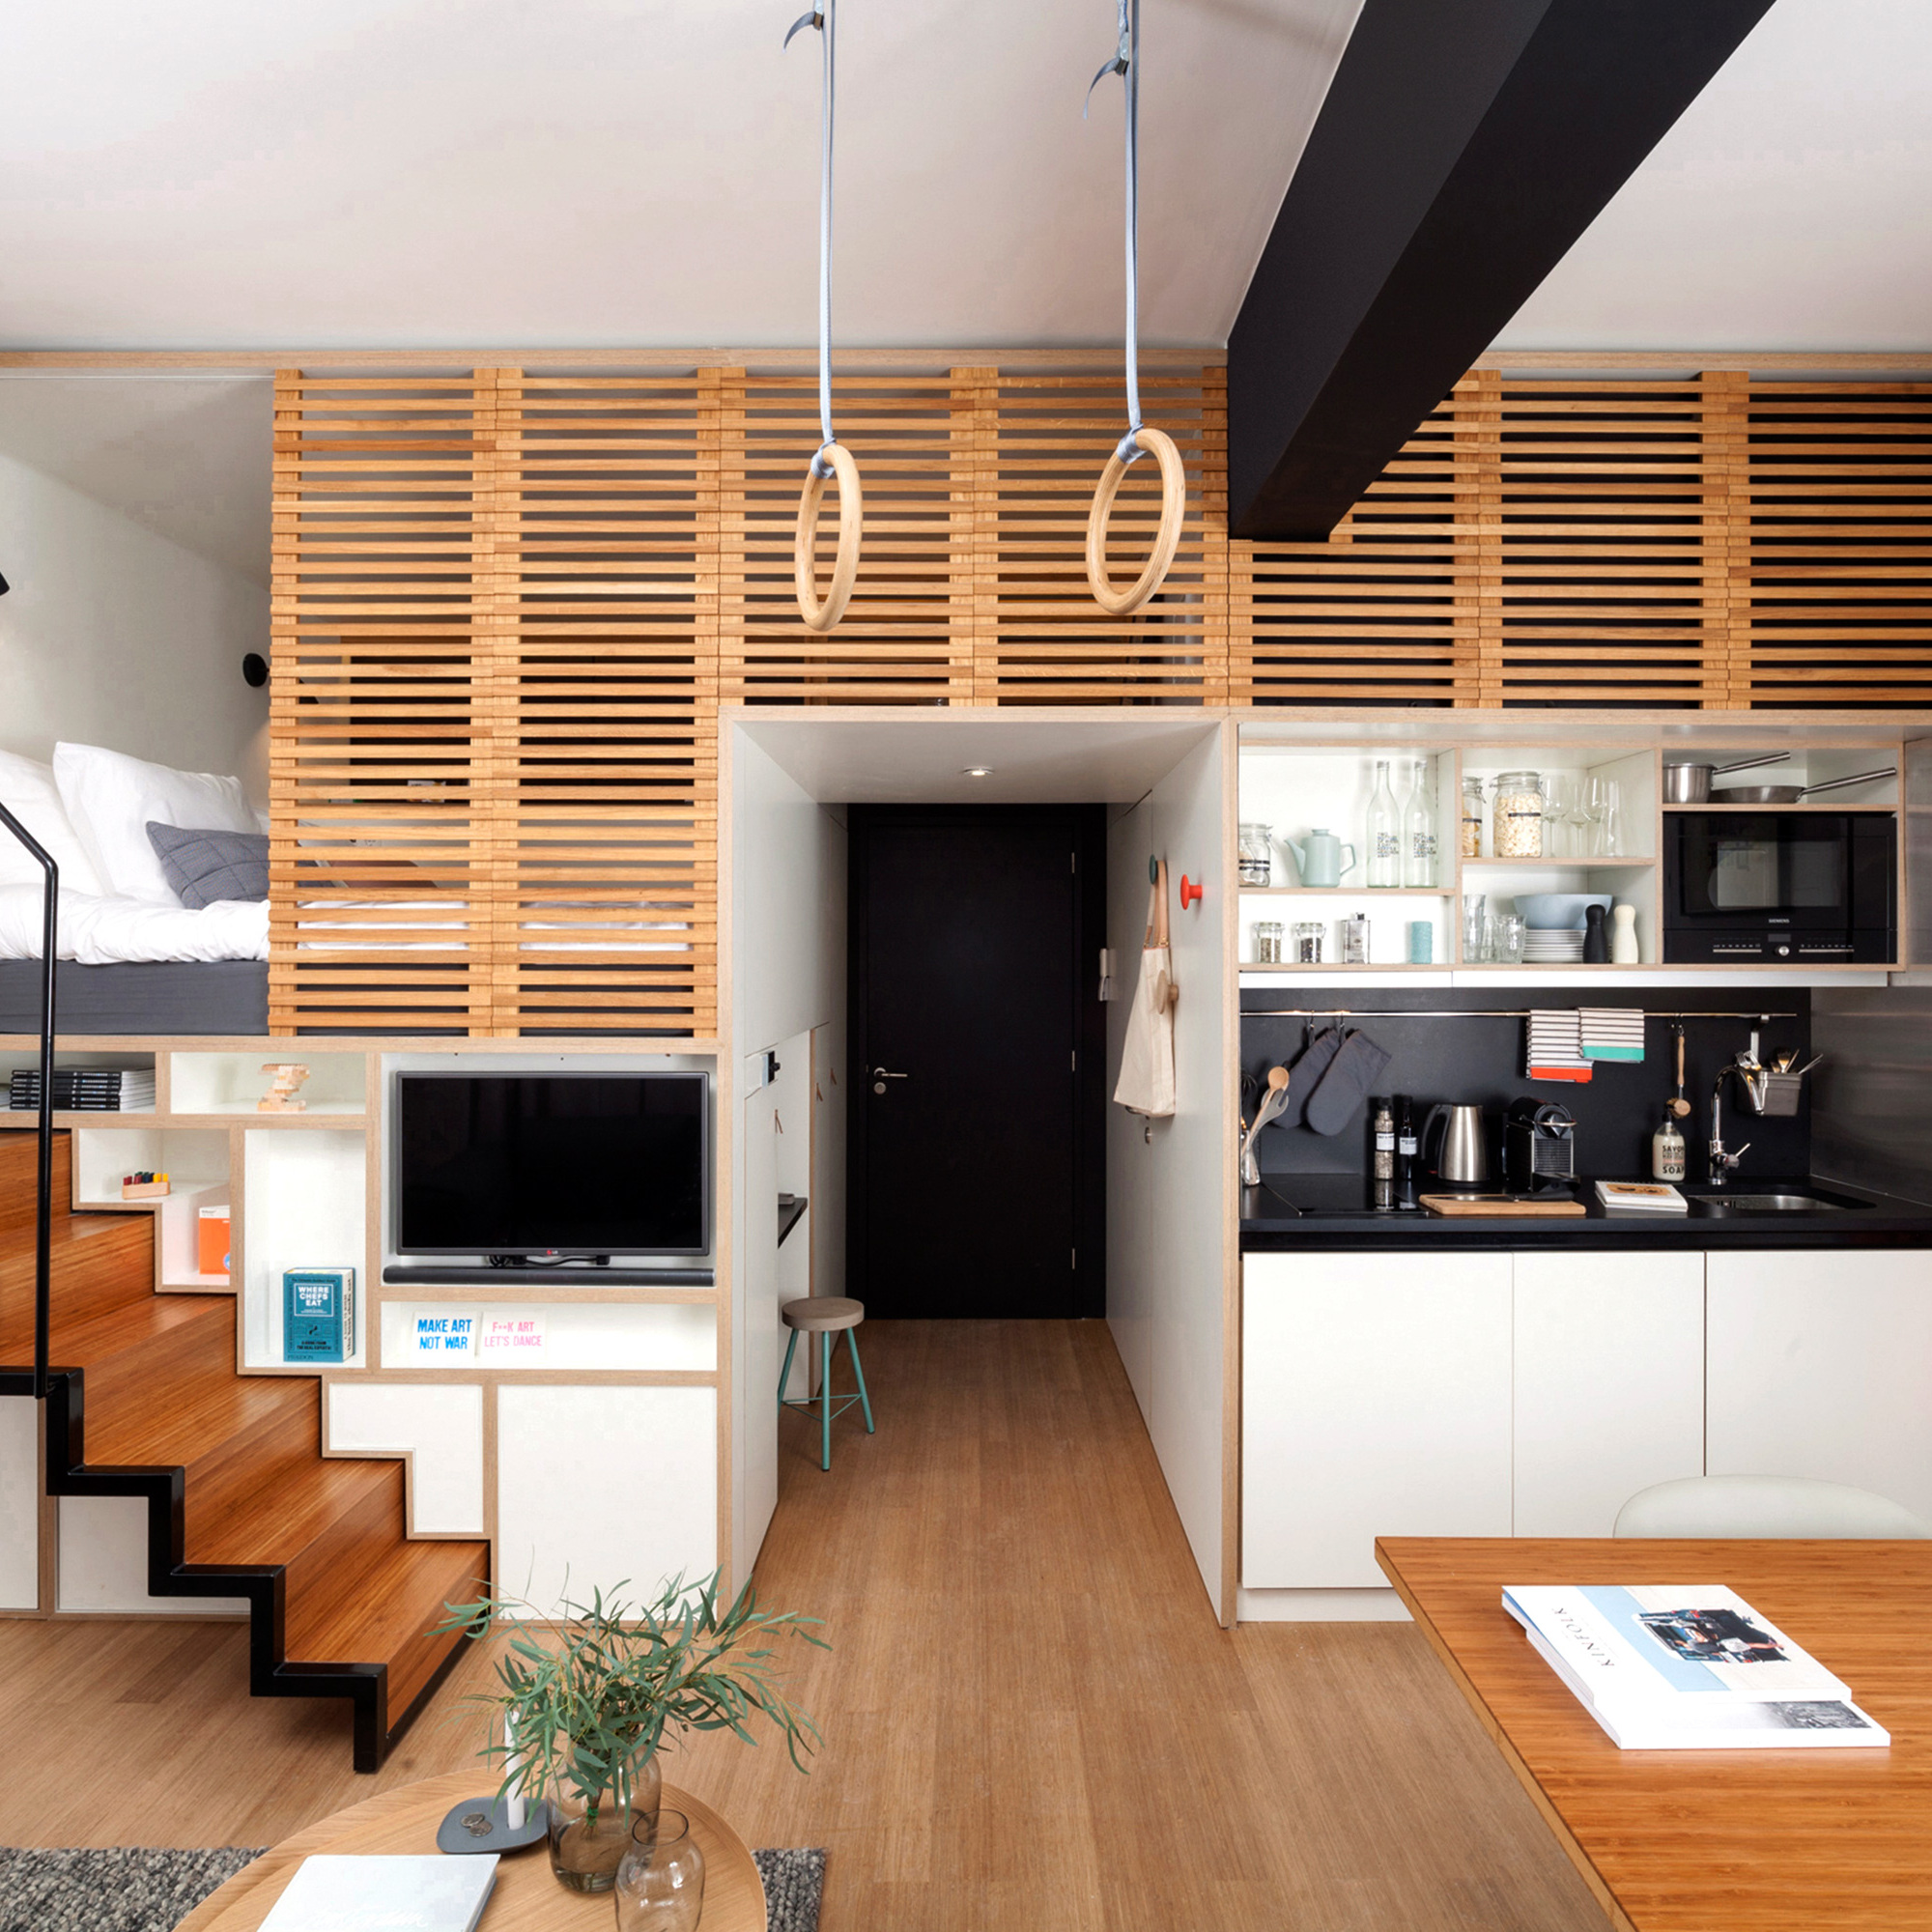 mendo-book-living-in-style-adam-zoku-2000x2000-c-default.jpg